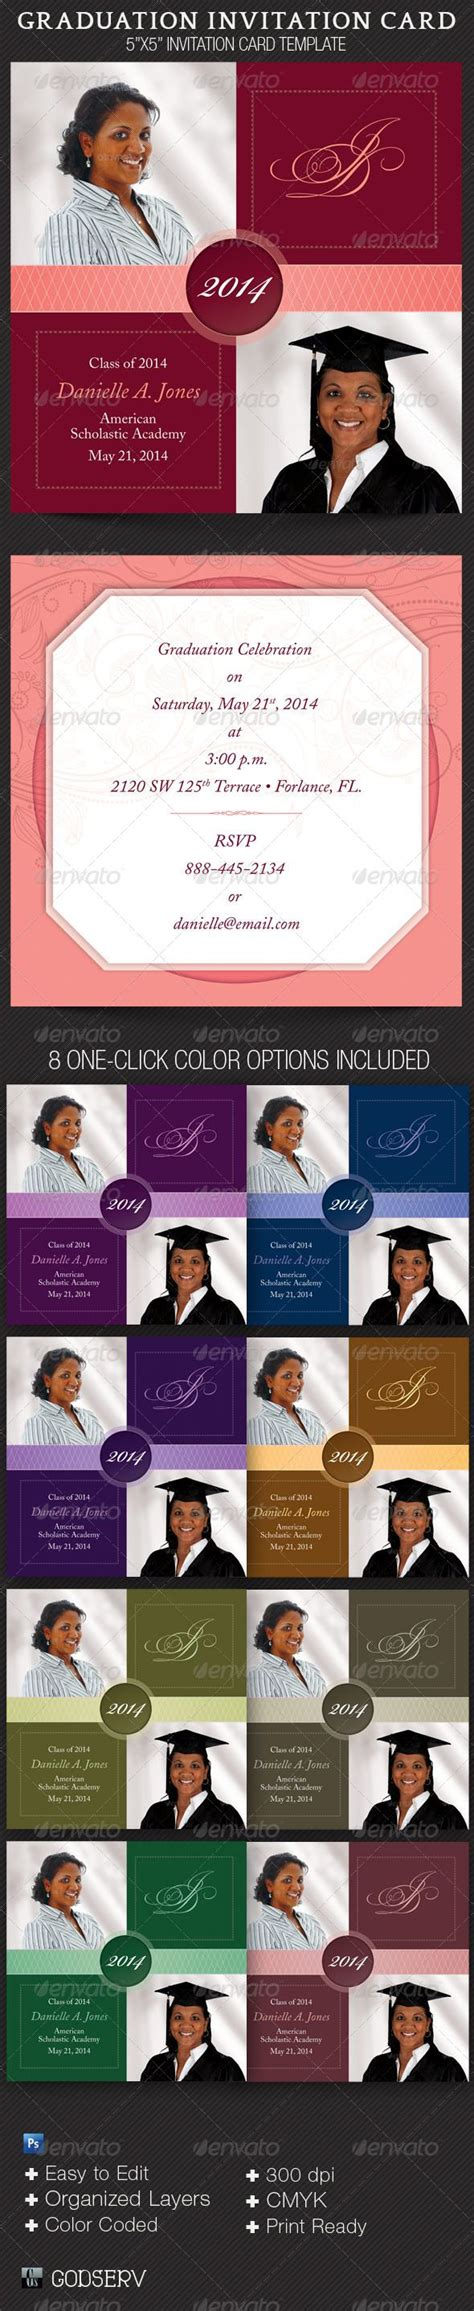 graduation card template photoshop 1000 images about community events templates on